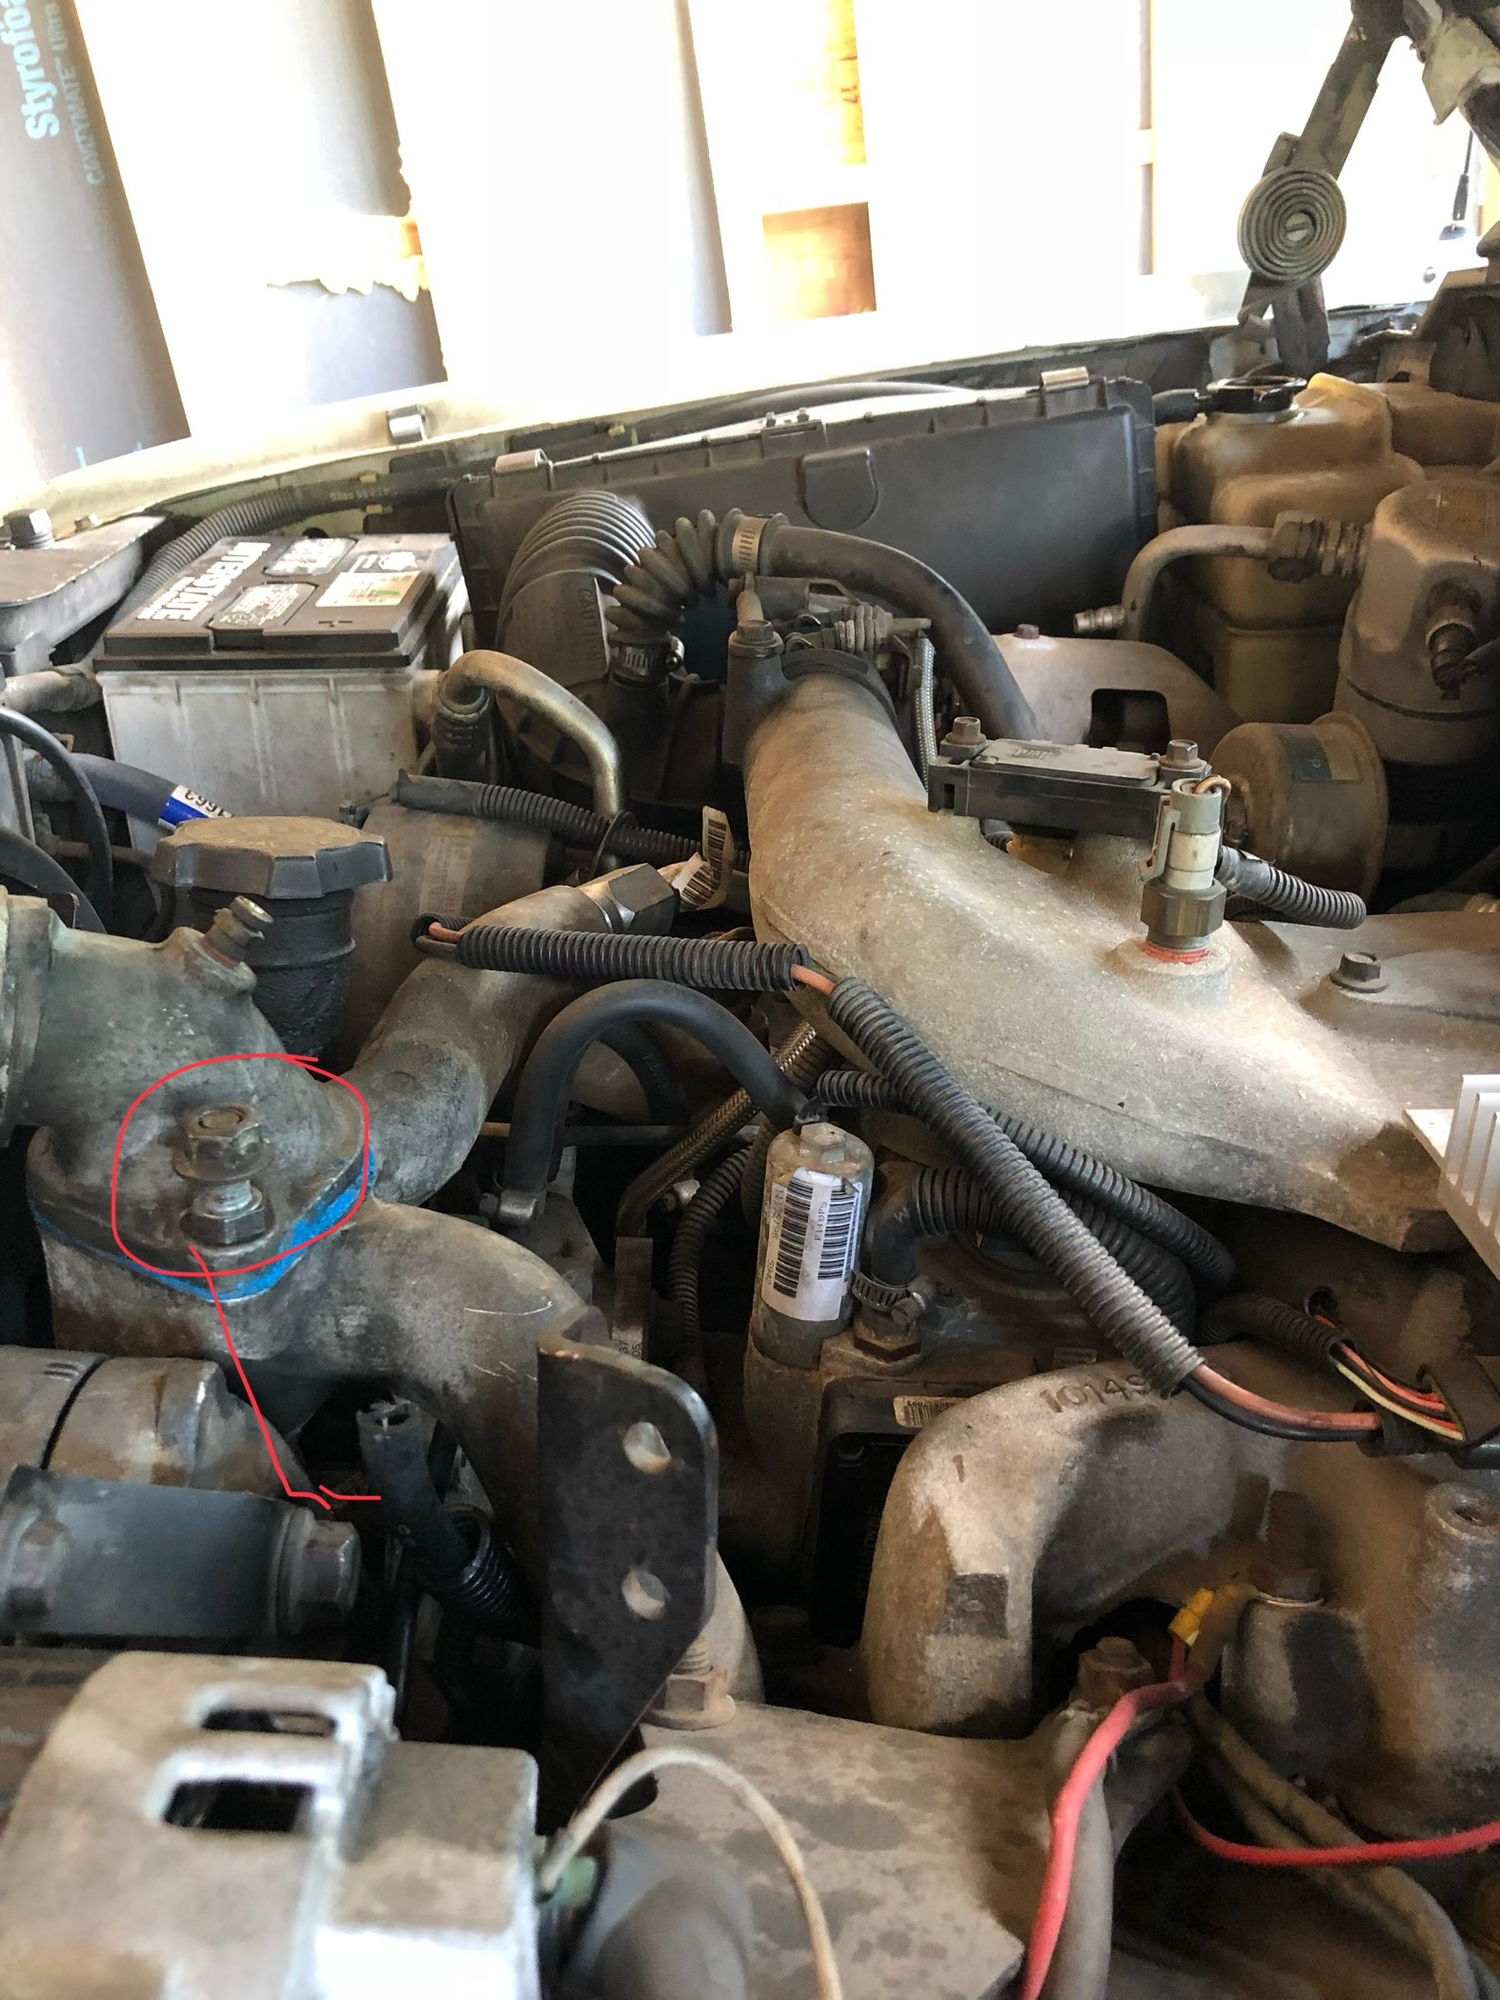 How To Bleed 65l Fuel System Diesel Bombers 94 Chevy Truck Filter The Valve Gets Bolted Where I Circled Line Thats Pointing Hose Has Spitting Out Of It When Is Running